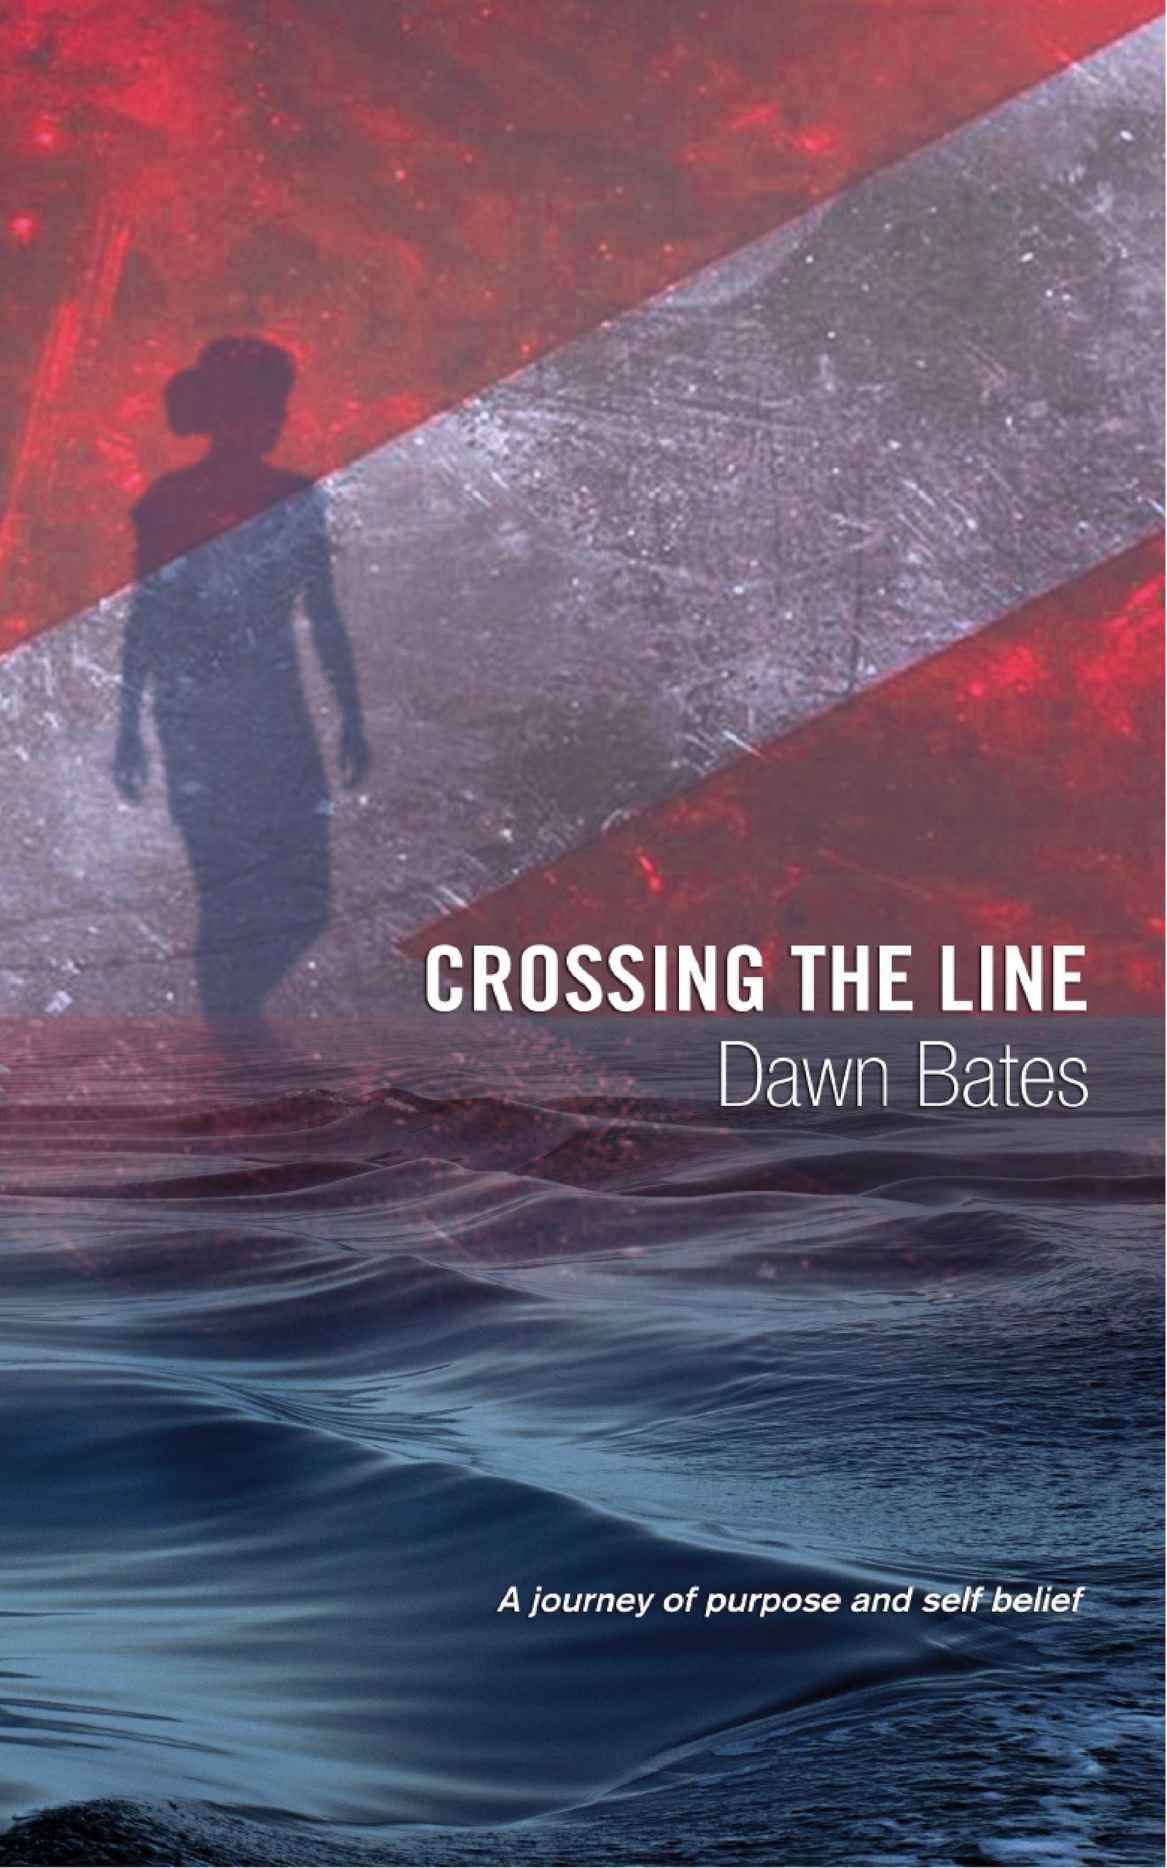 Crossing the Line by Dawn Bates